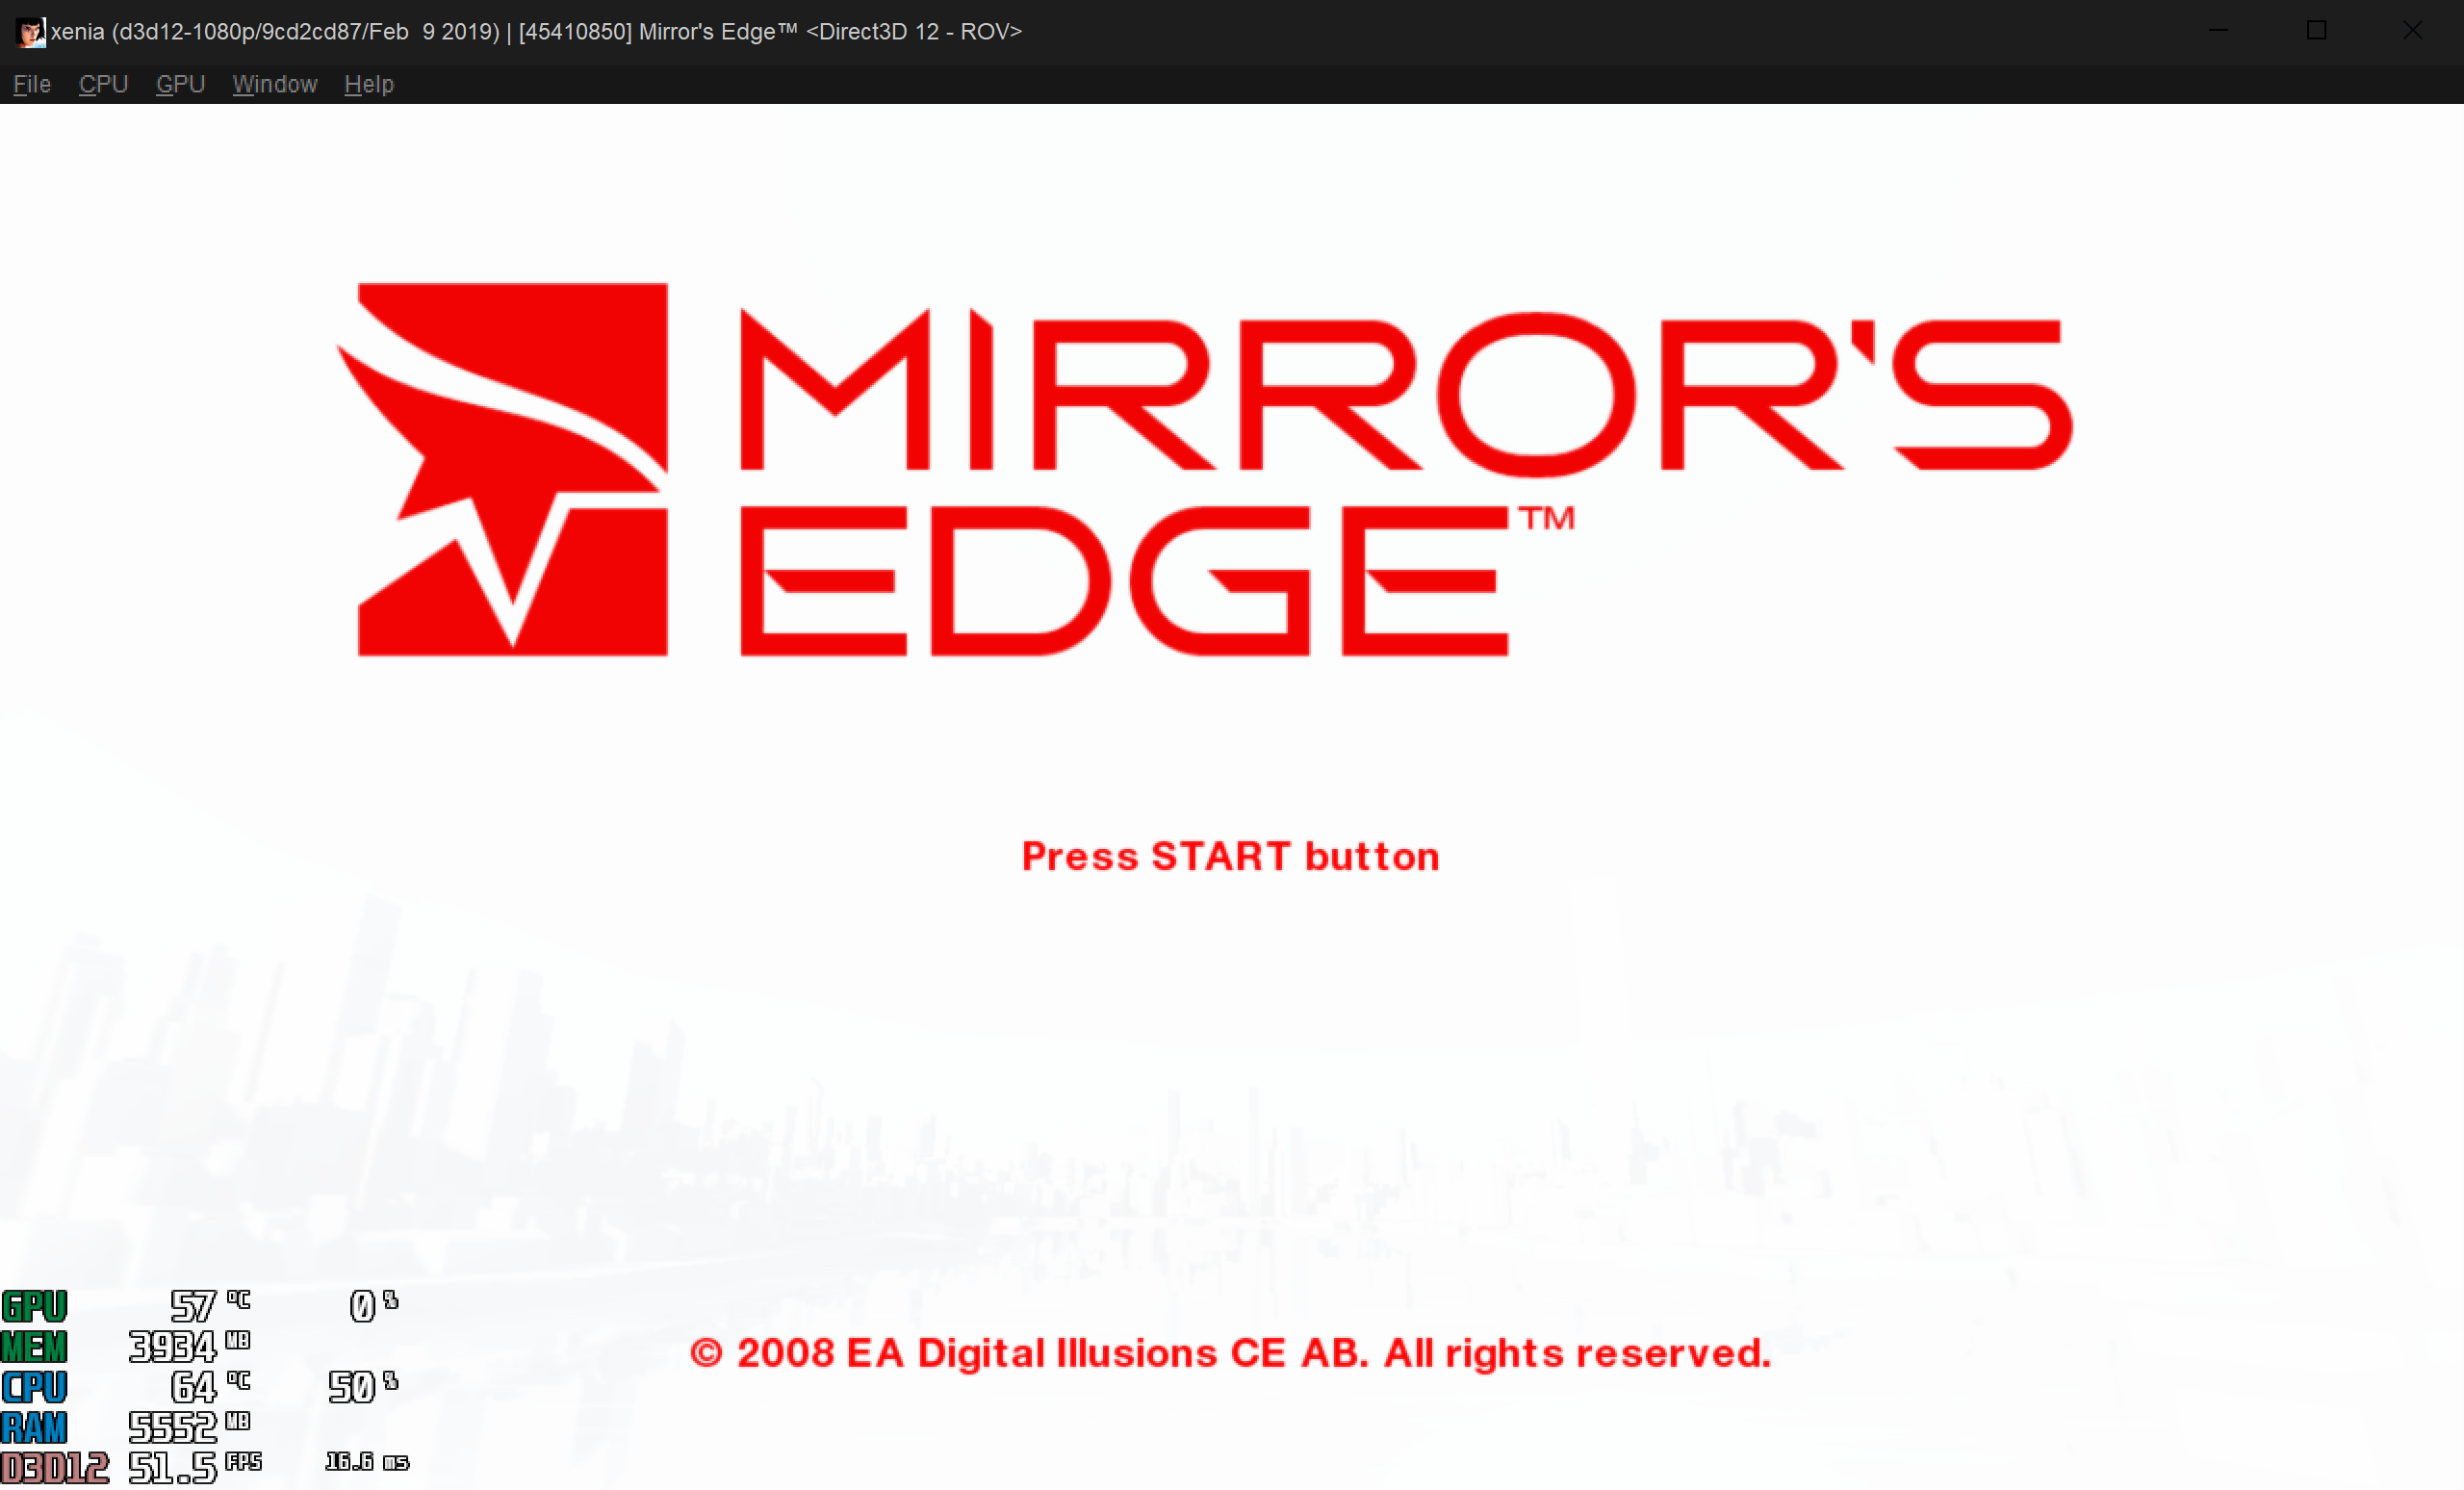 45410850 - Mirror's Edge · Issue #264 · xenia-project/game